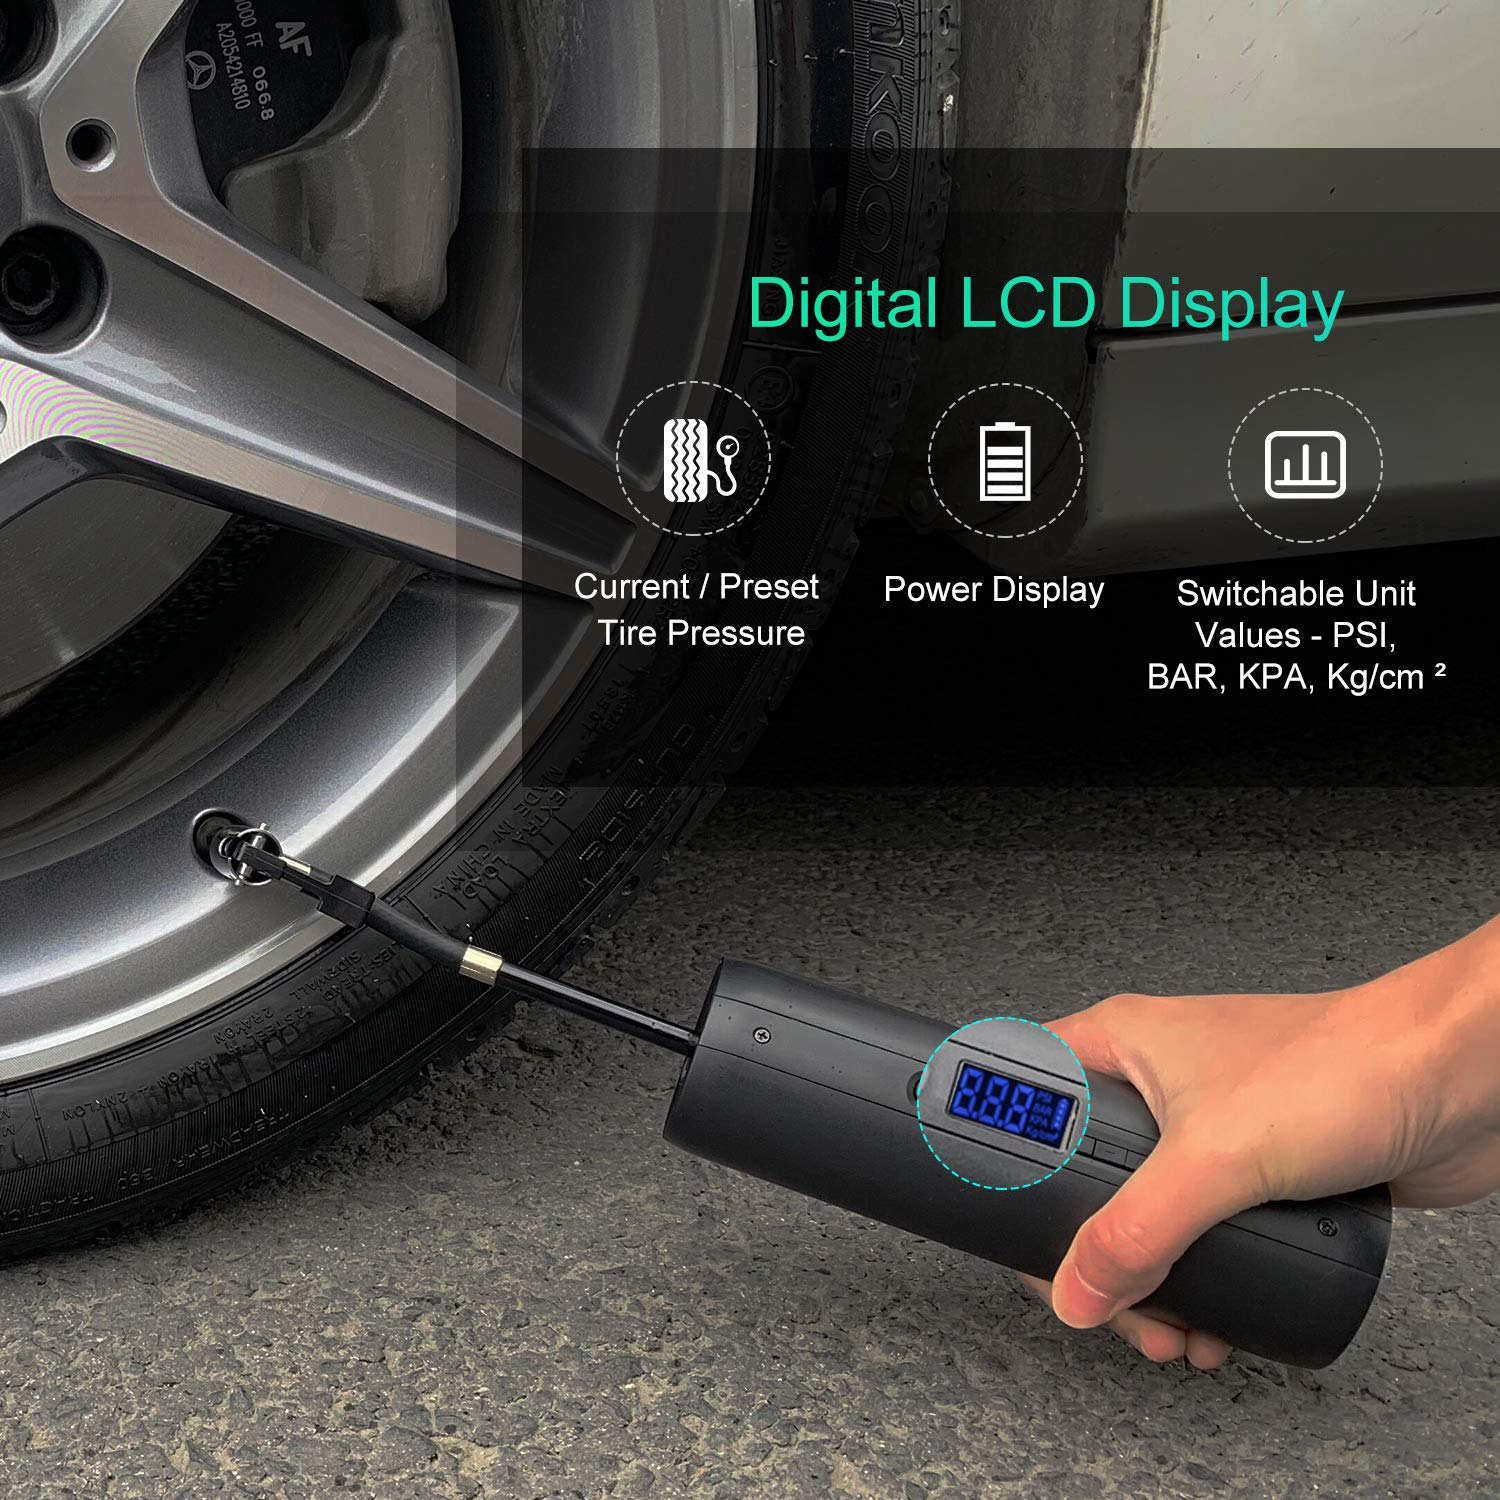 Rechargeable Portable Air Compressor Tire Inflator Pump 12V DC with Digital LCD Display Emergency LED Light Hand Held 2000mAh Power Bank 150PSI High Pressure for Car Bike and Other Inflatable A5 Black